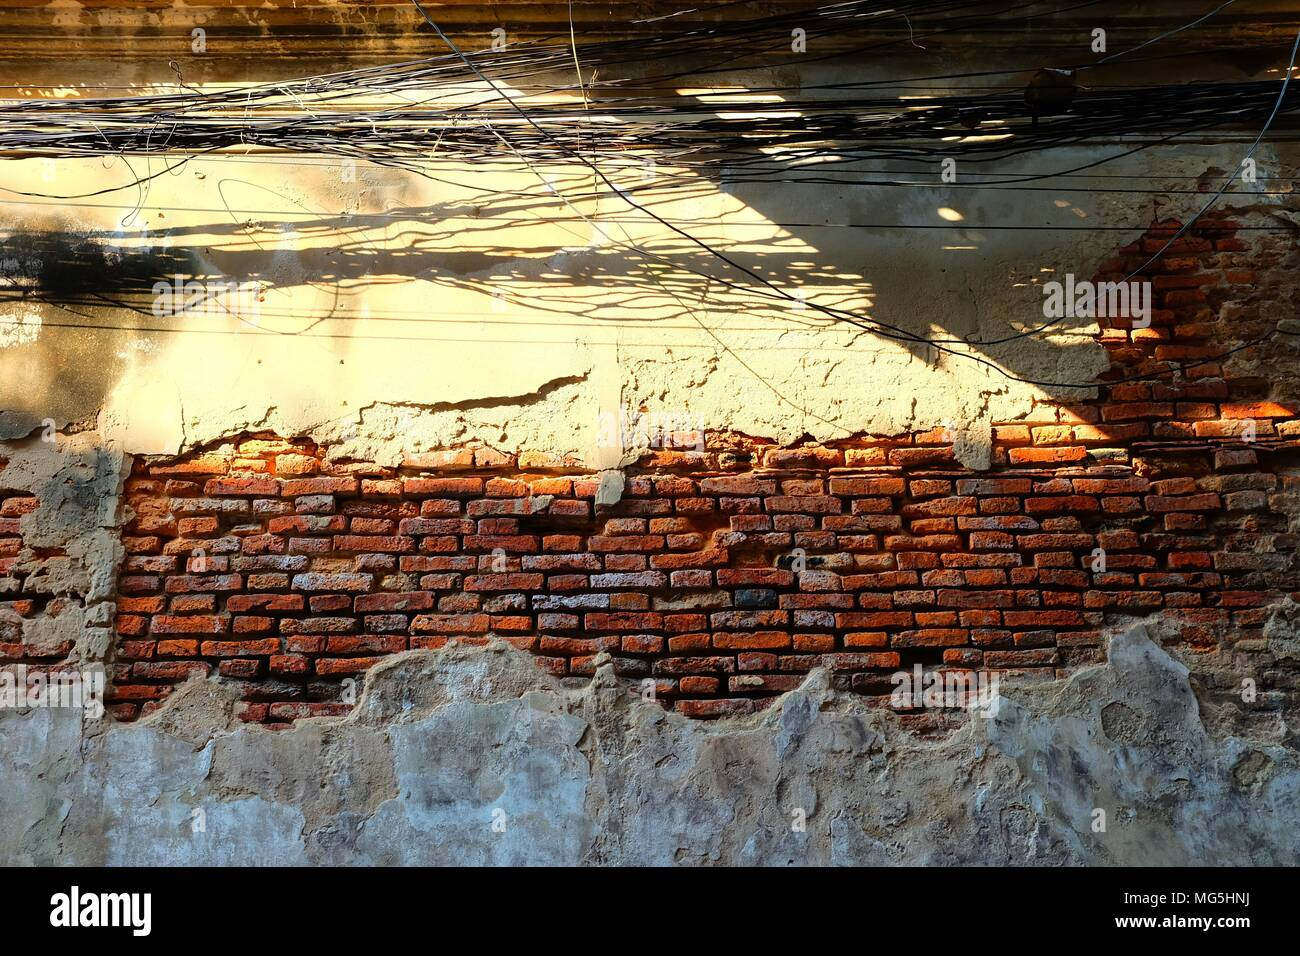 Electrical Wiring Mess Stock Photos In Brick Wall Messy Wires With Broken Old Image